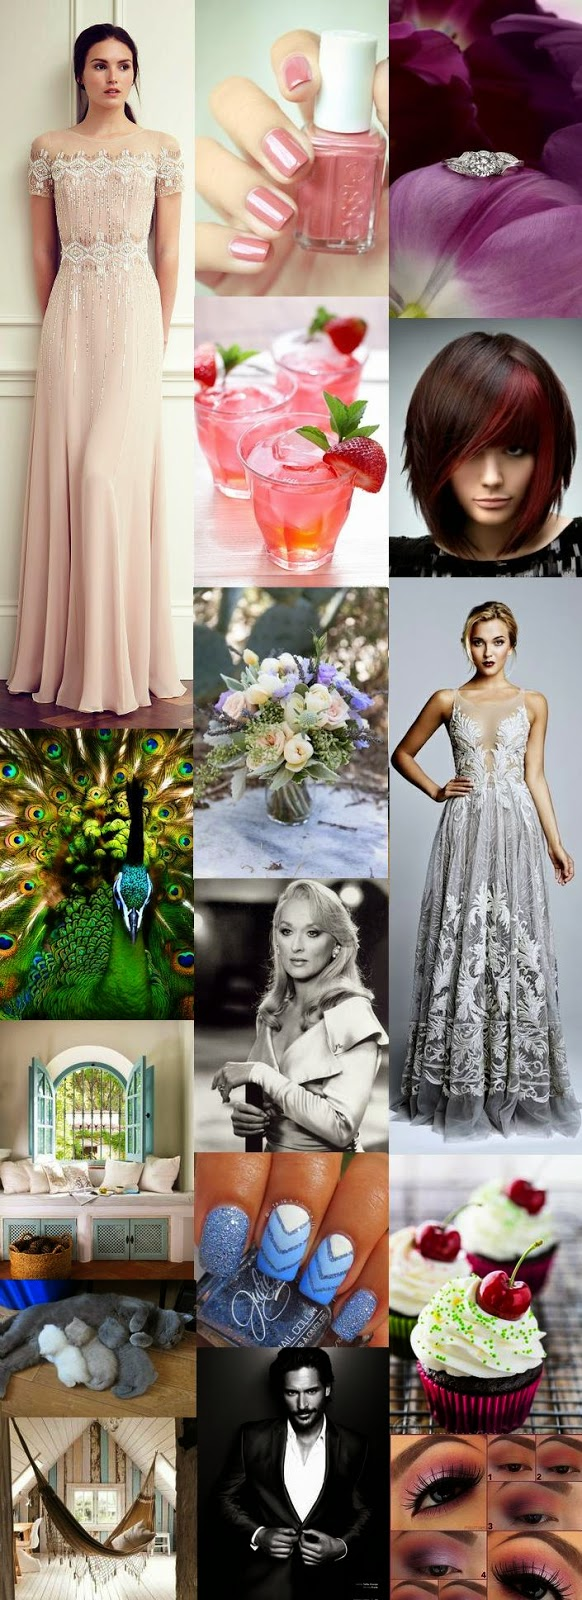 meryl streep joe manganiello cupcake chat chaton nailart paon robe de soirée cheveux rouge thé glacé essie bague make up